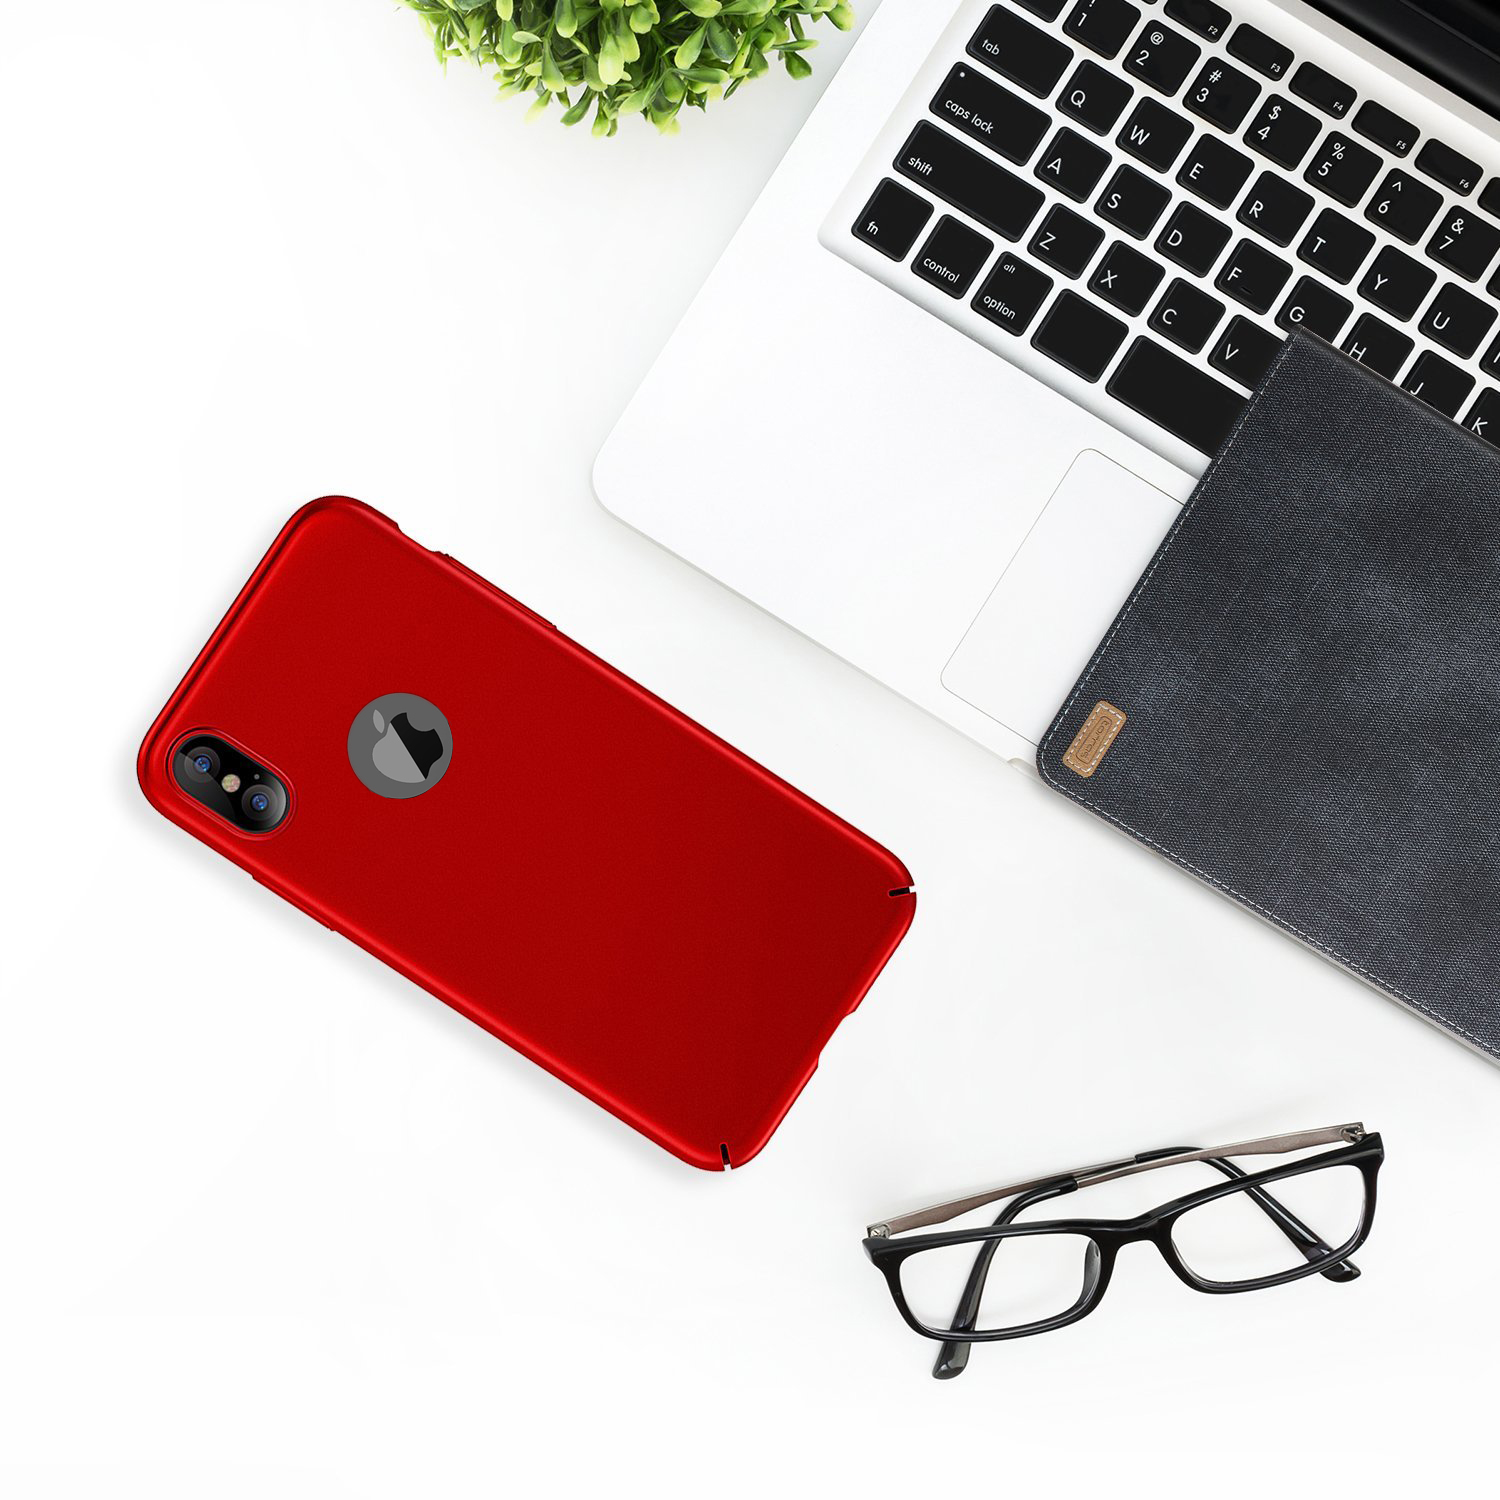 Shockproof-Hard-Back-Ultra-Thin-Slim-New-Bumper-Case-Cover-For-Apple-iPhone-X-XR miniatuur 30